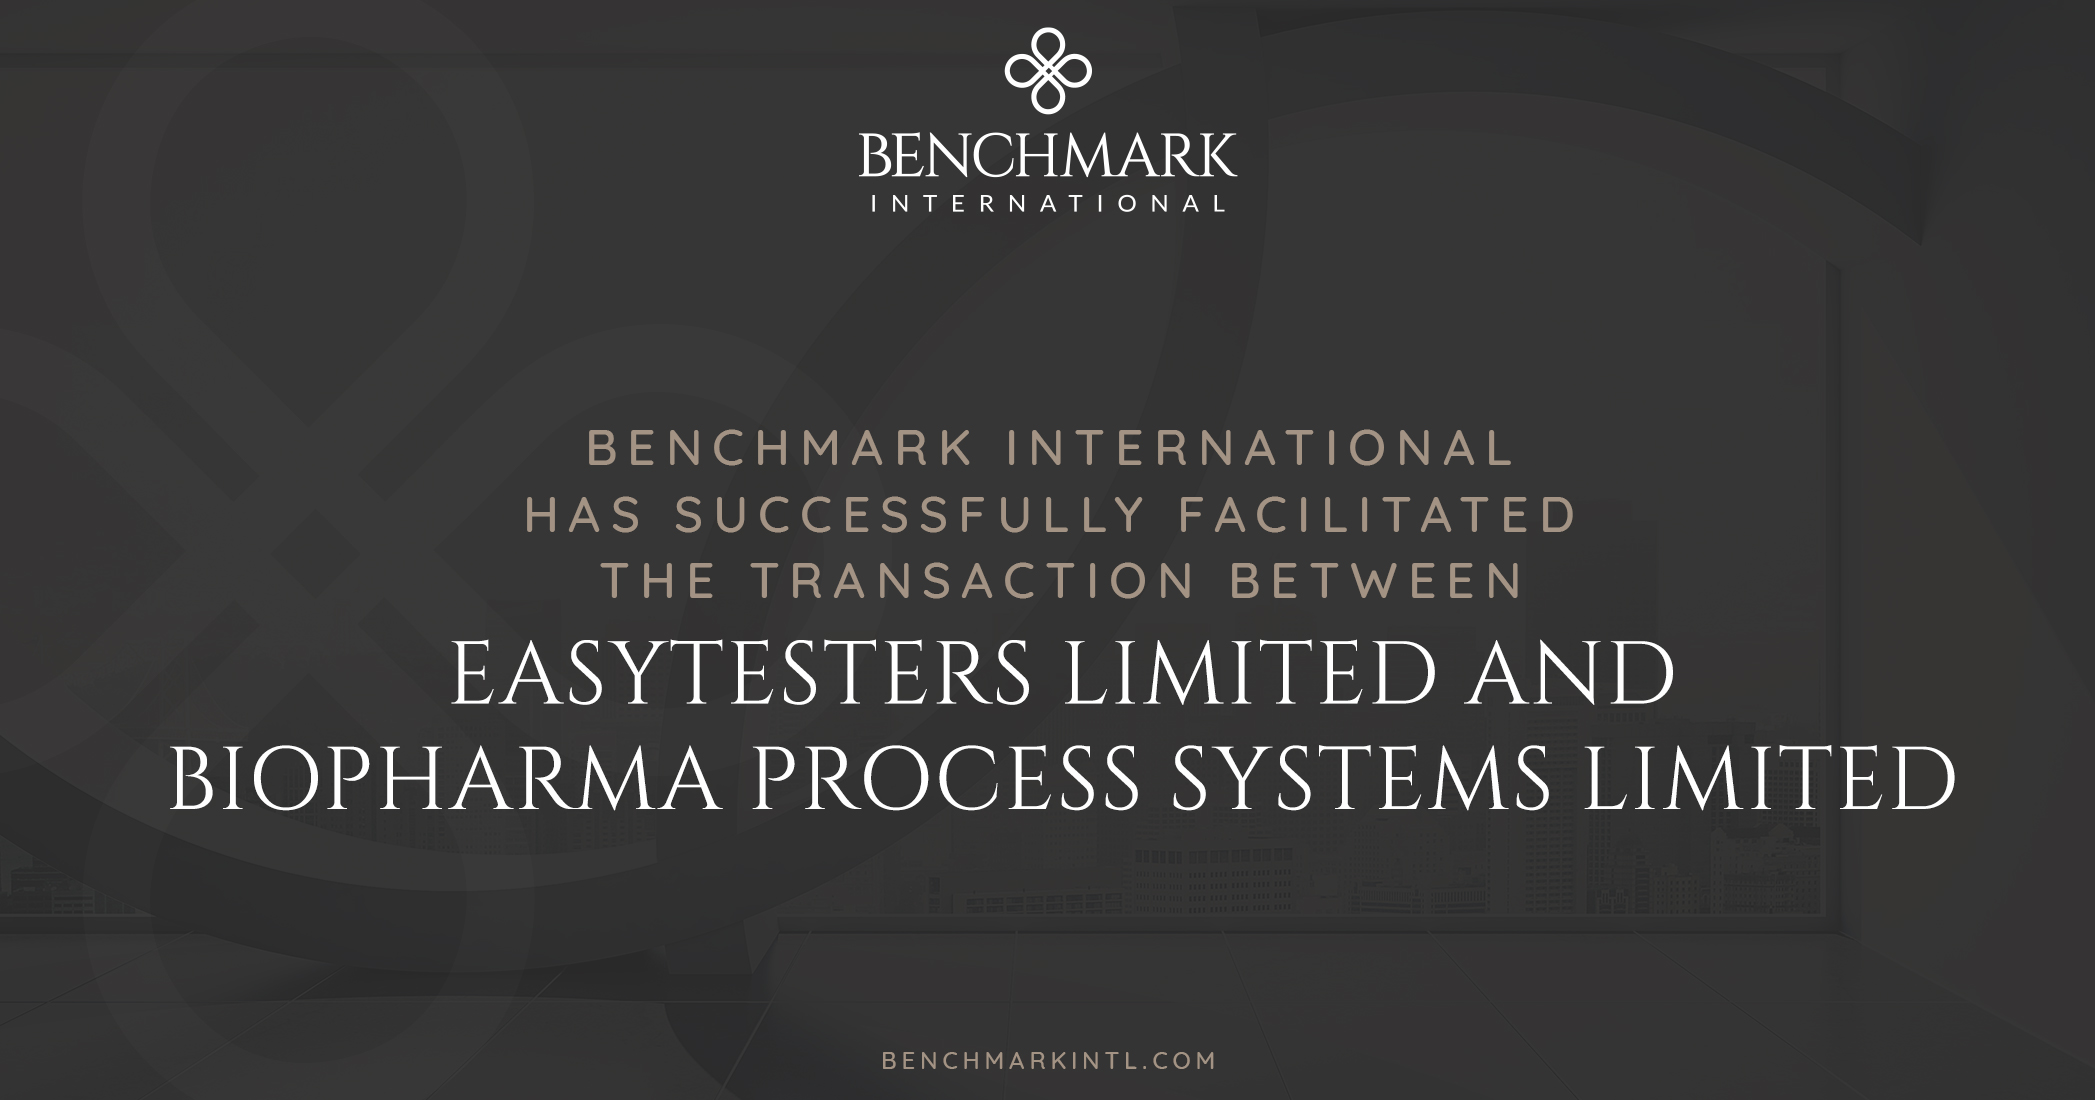 Benchmark International has Successfully Facilitated the Transaction Between Easytesters Limited and Biopharma Process Systems Limited